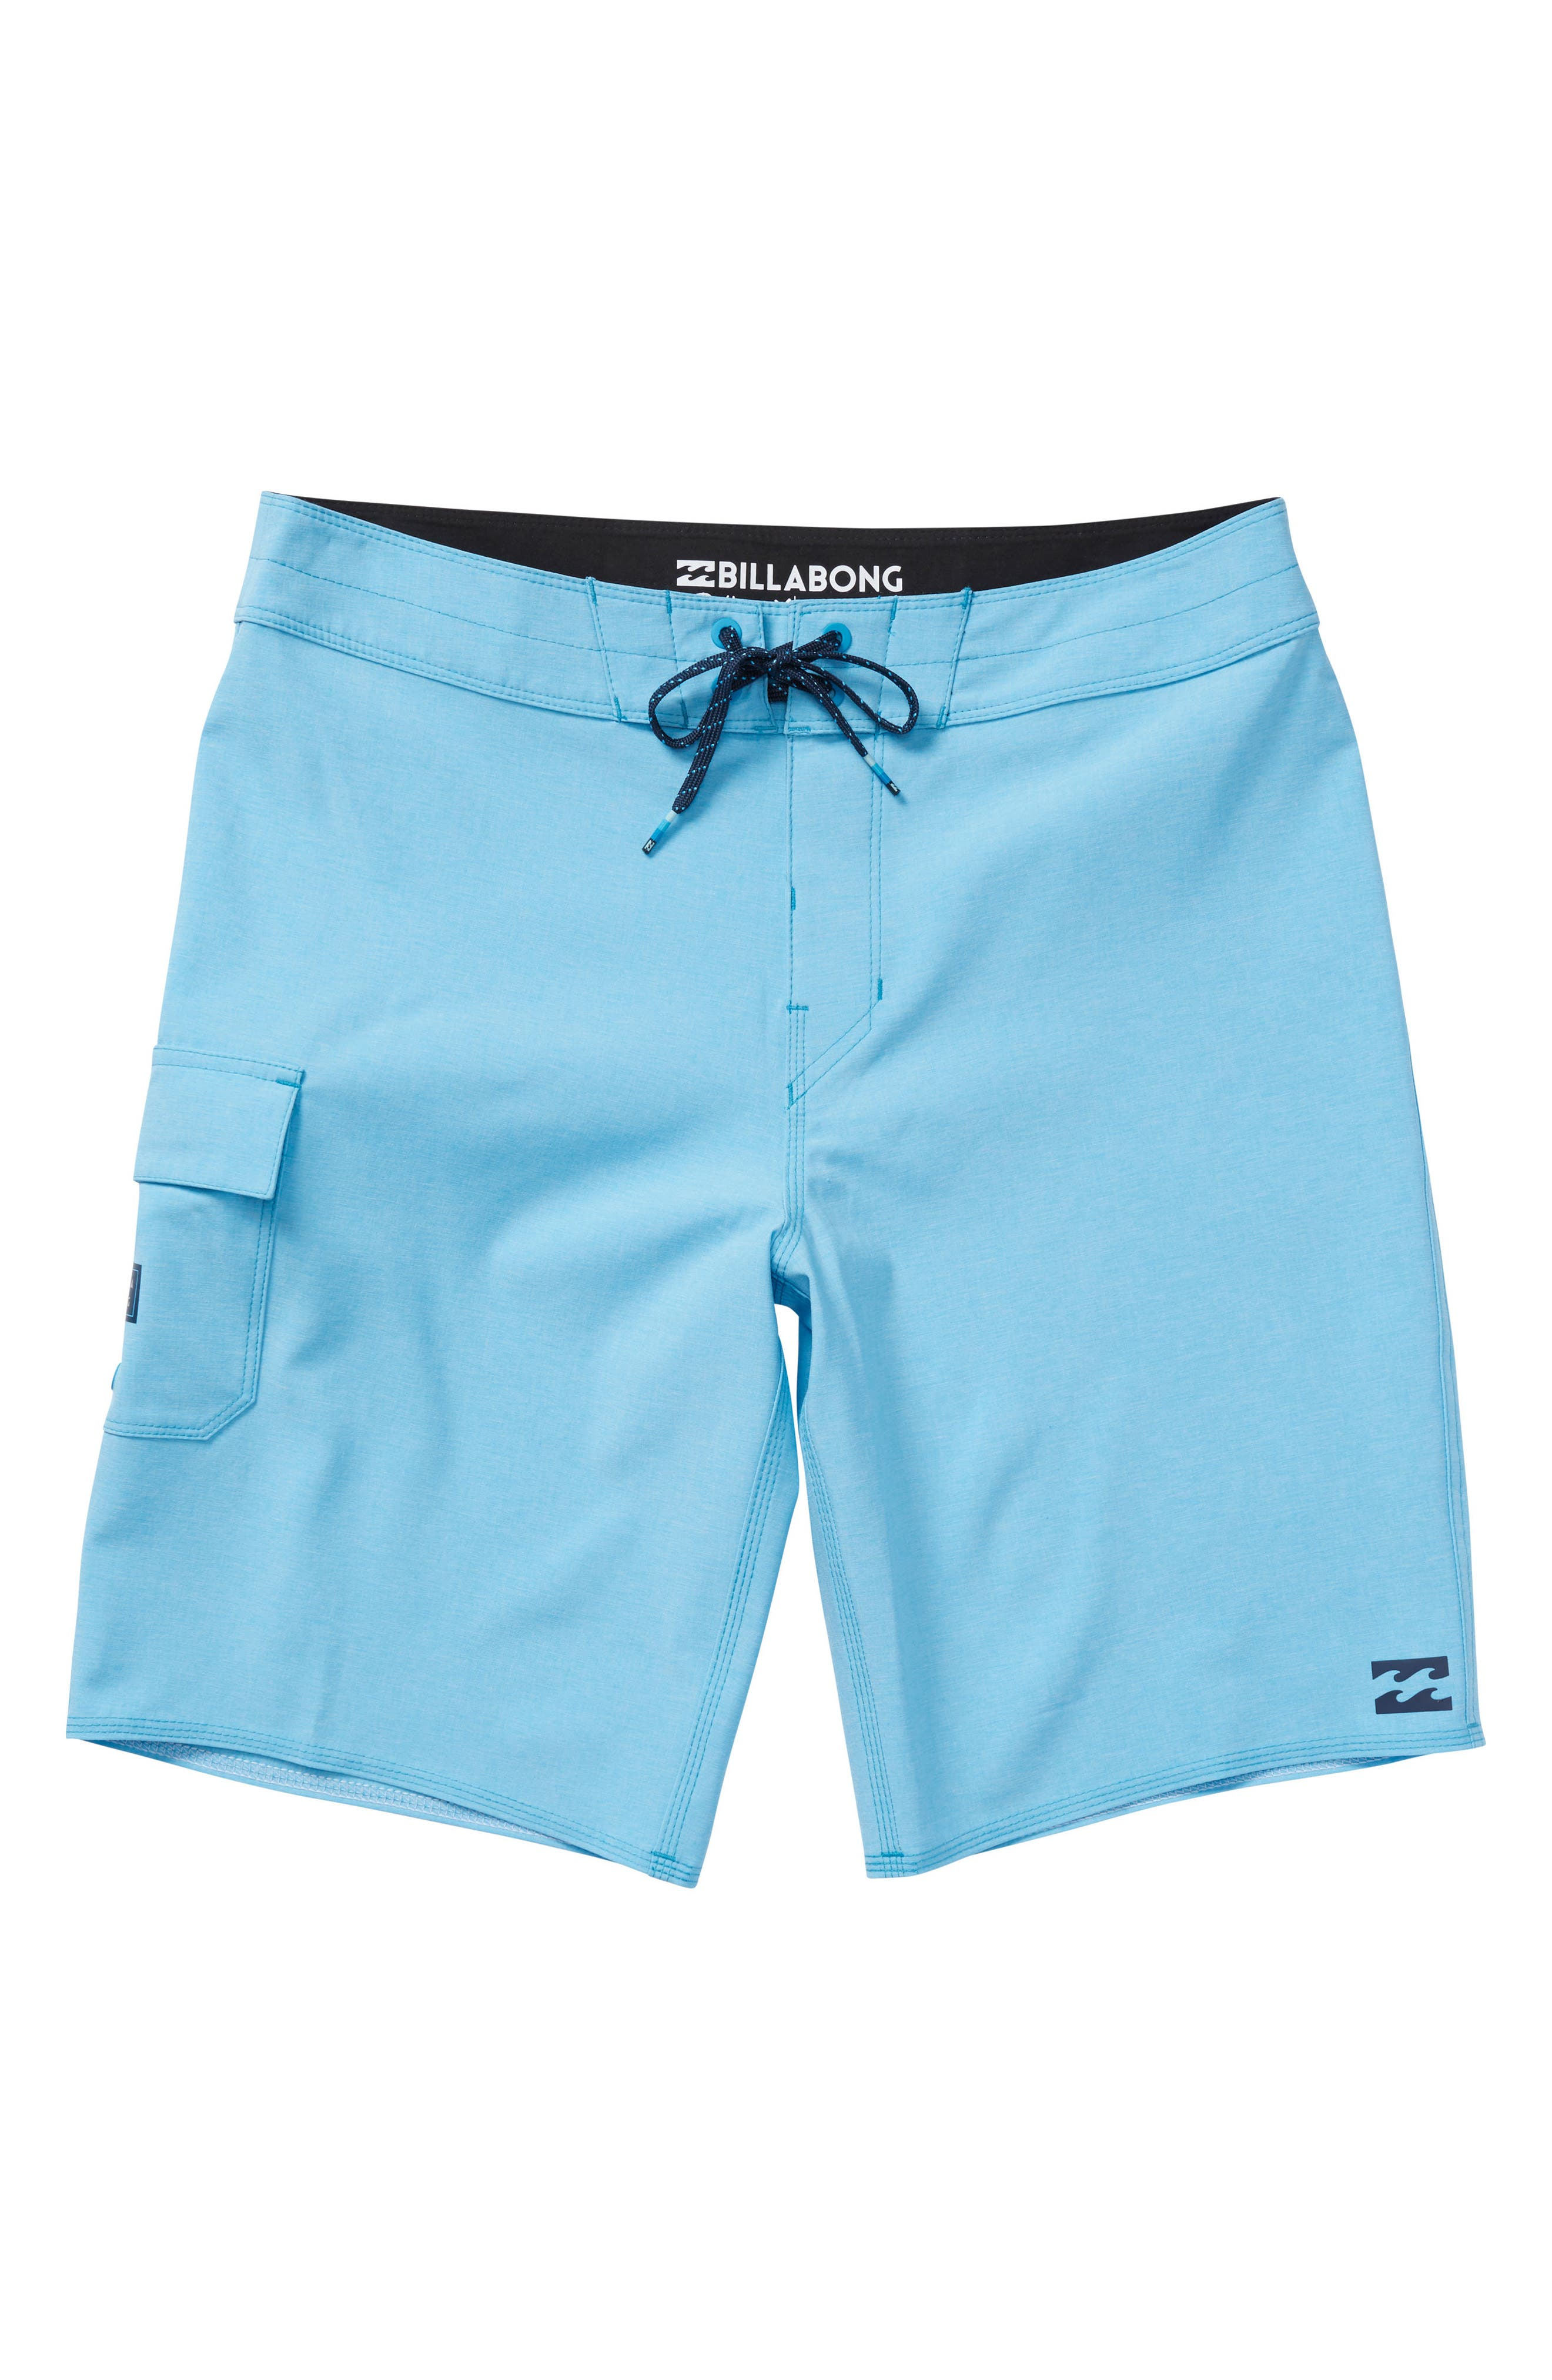 All Day X Board Shorts,                             Main thumbnail 1, color,                             BLUE HEATHER